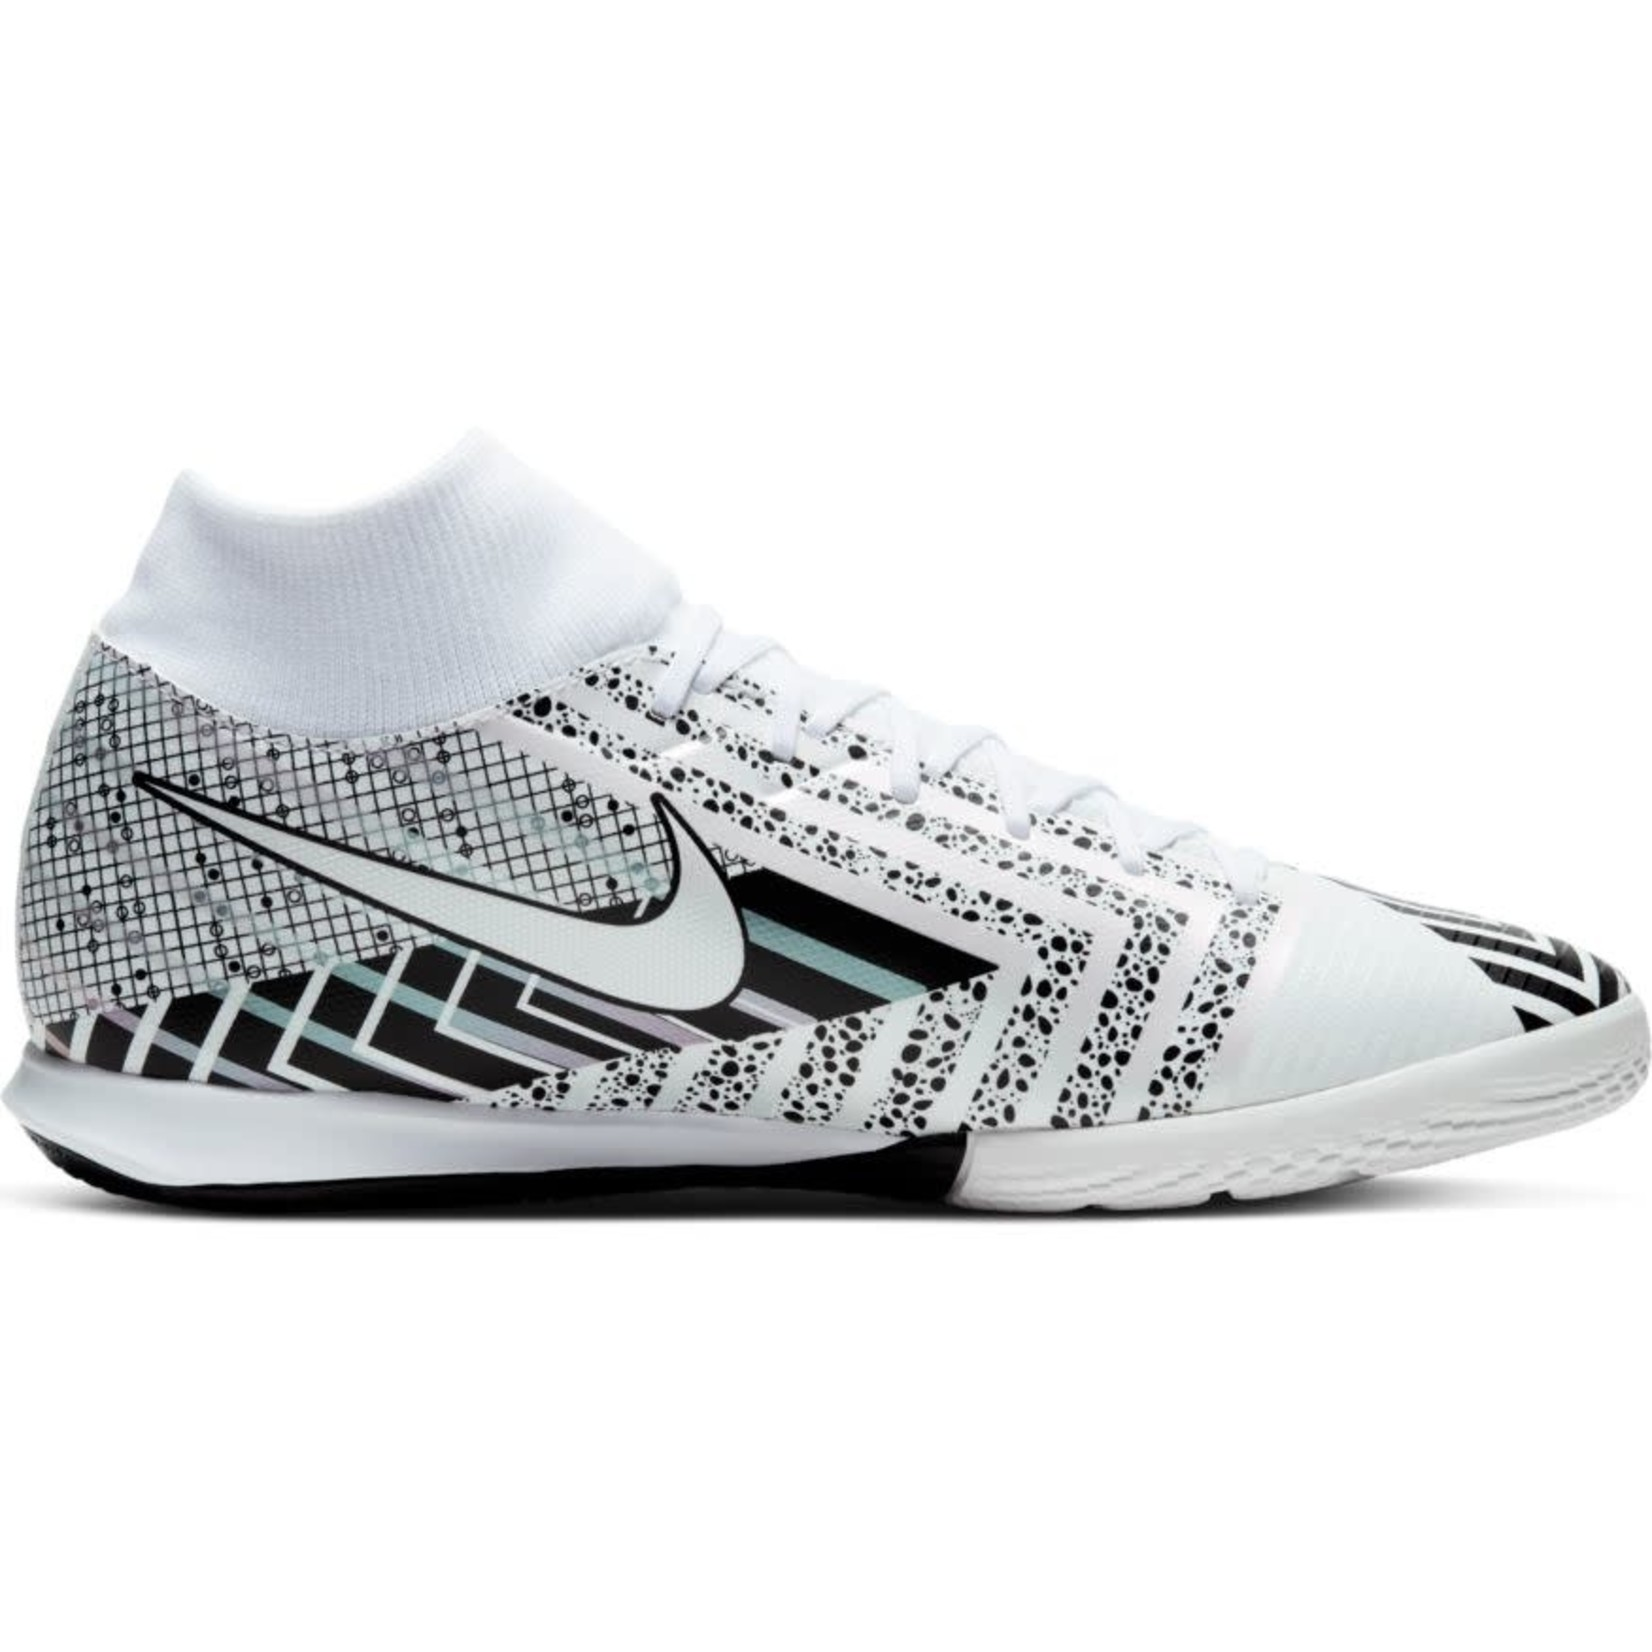 NIKE MERCURIAL SUPERFLY 7 ACADEMY MDS IC (WHITE/BLACK)